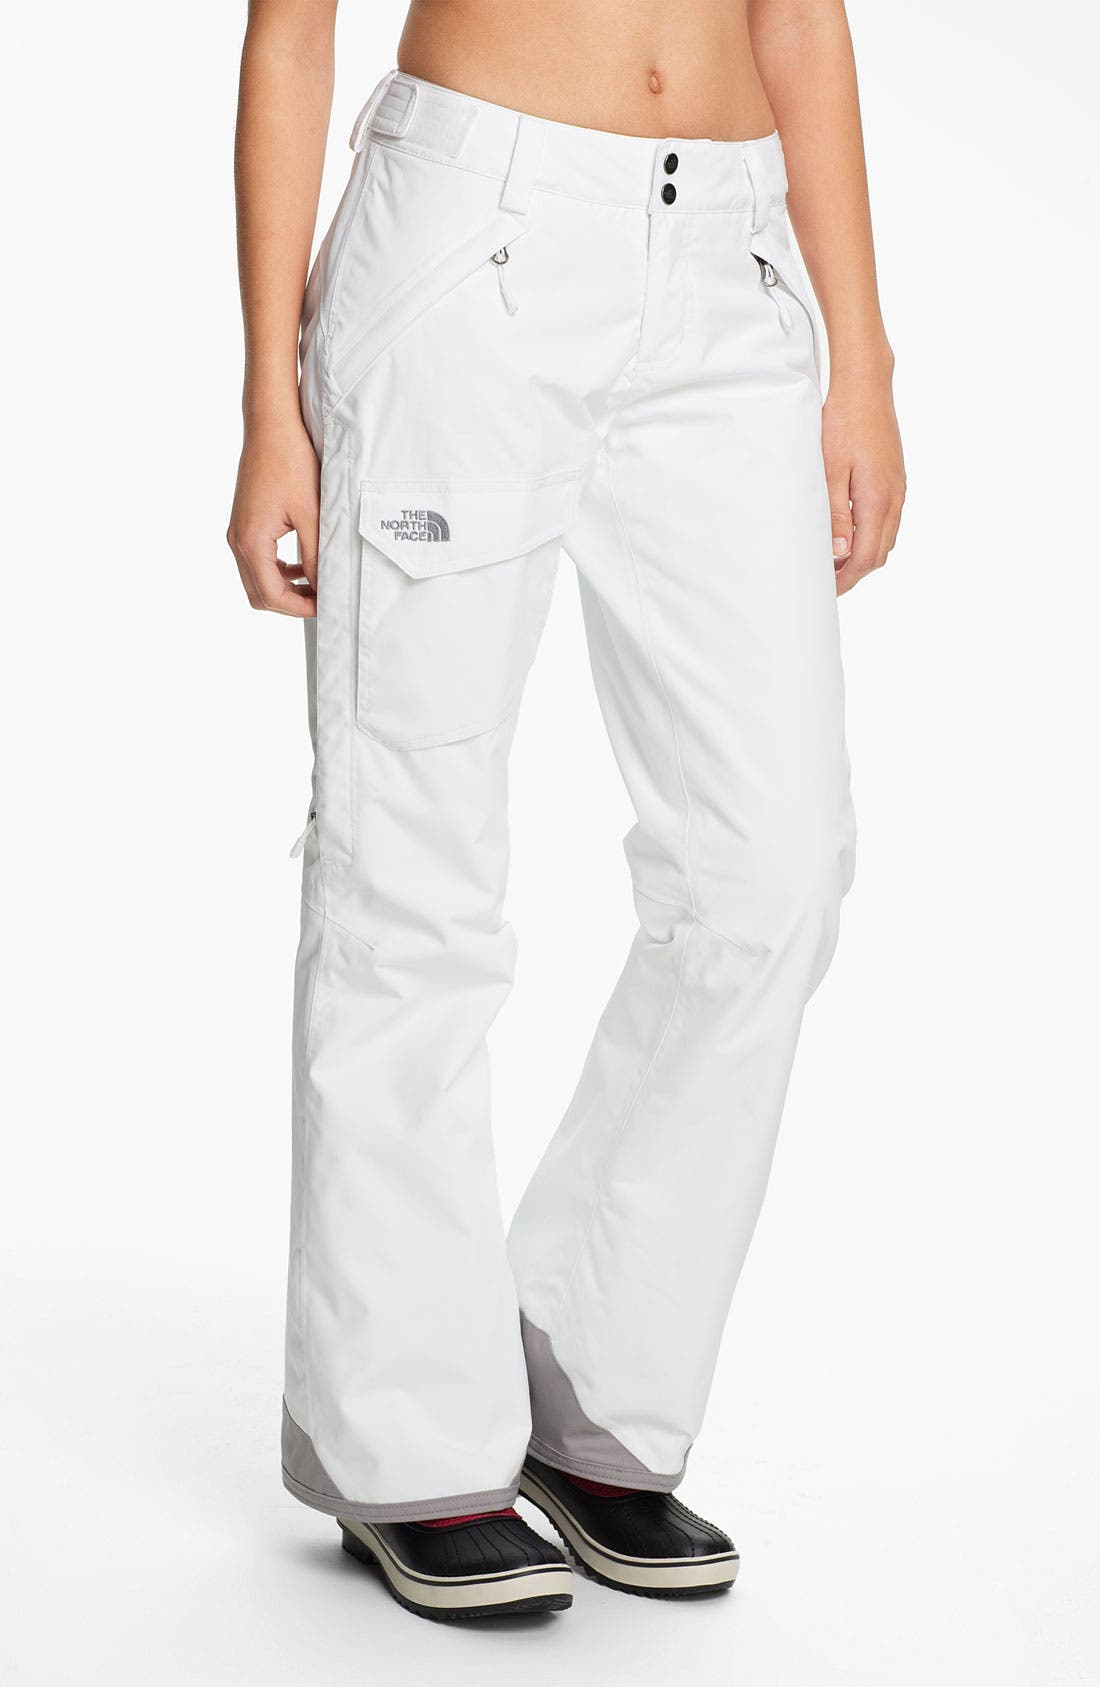 Alternate Image 1 Selected - The North Face 'Freedom LRBC' Insulated Pants